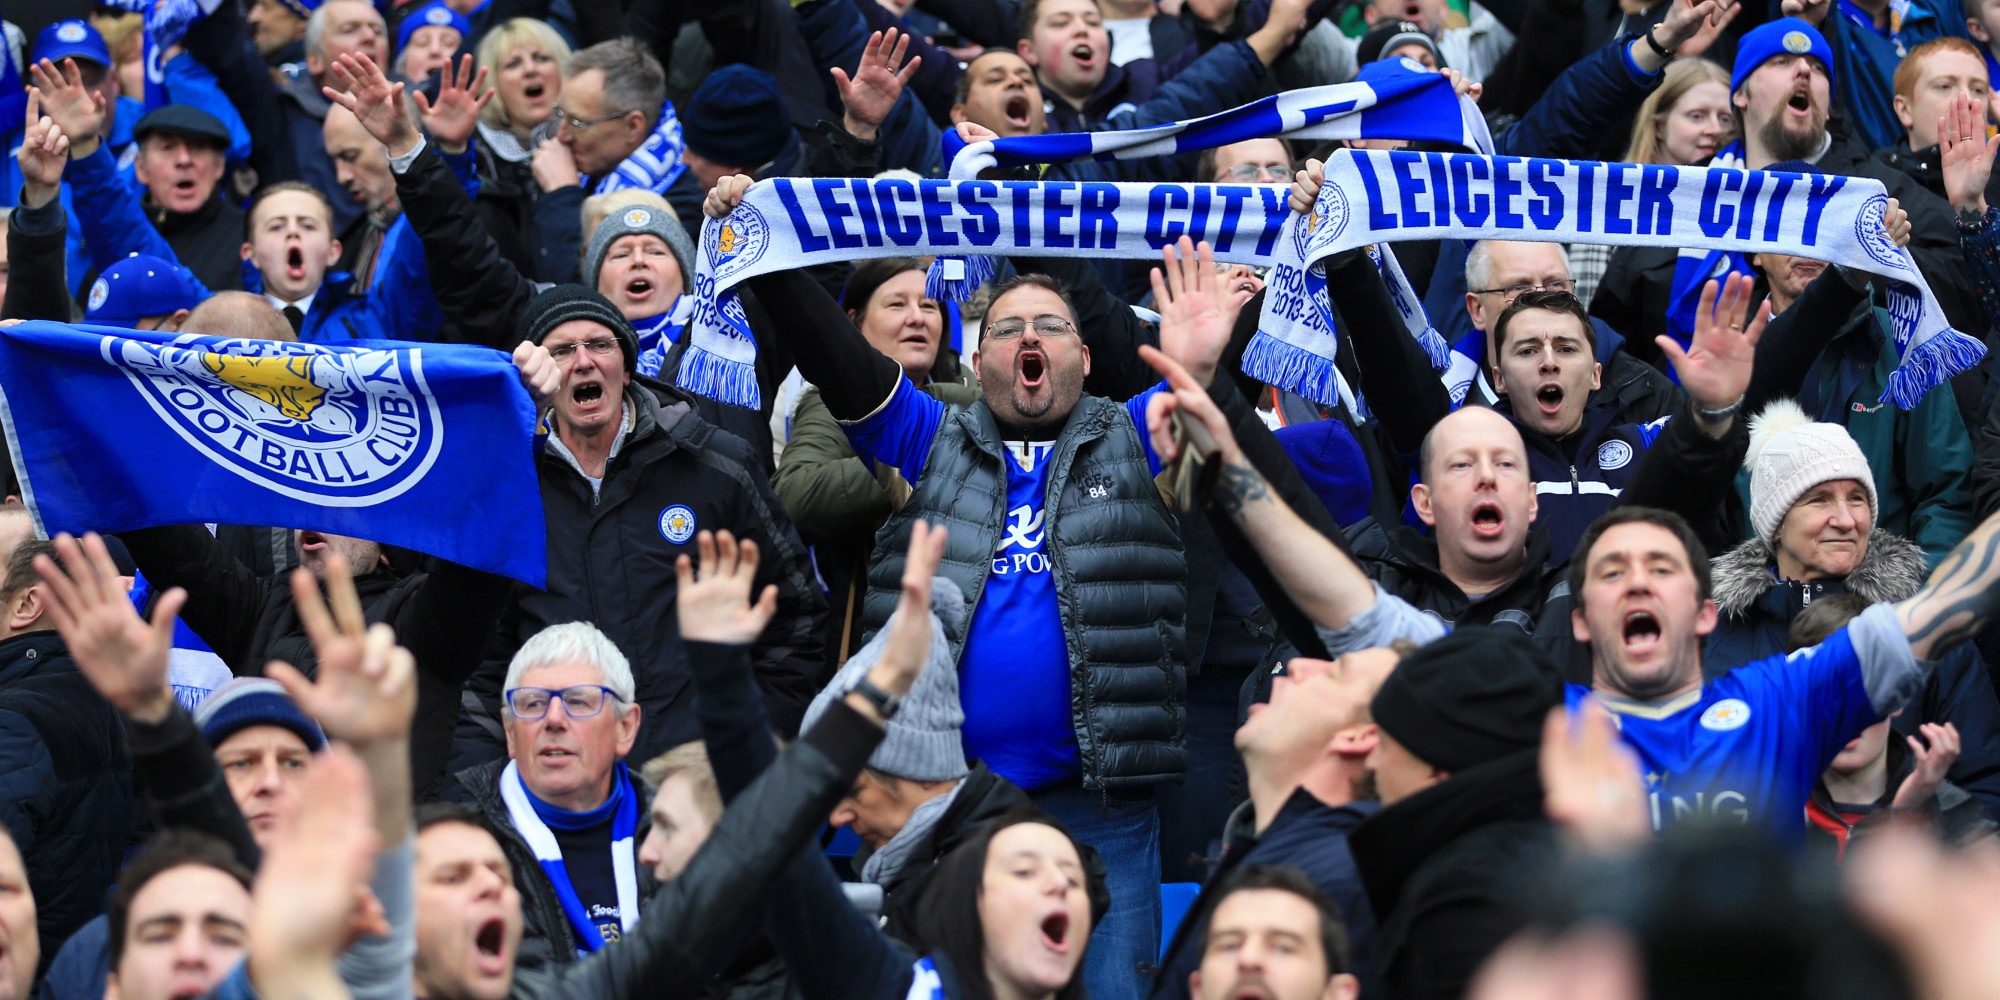 MANCHESTER, ENGLAND - FEBRUARY 06: Leicester fans celebrate during the Barclays Premier League match between Manchester City and Leicester City at the Etihad Stadium on February 6, 2016 in Manchester, England. (Photo by Simon Stacpoole/Mark Leech Sports Photography/Getty Images)